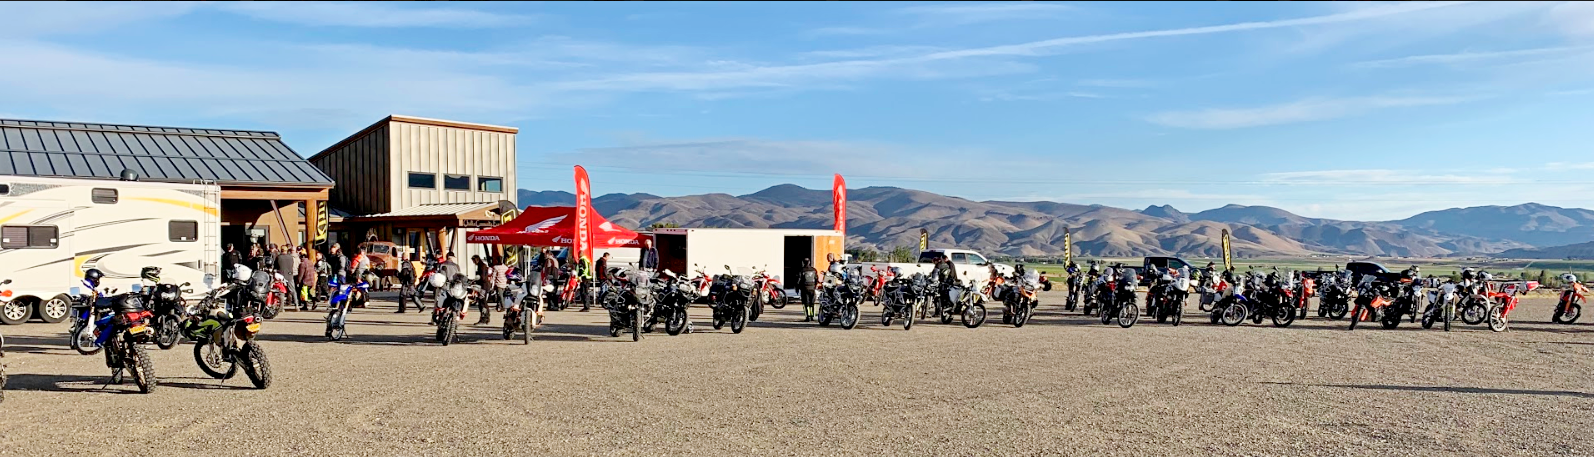 The Klim Cow Tagz Rally 2019.